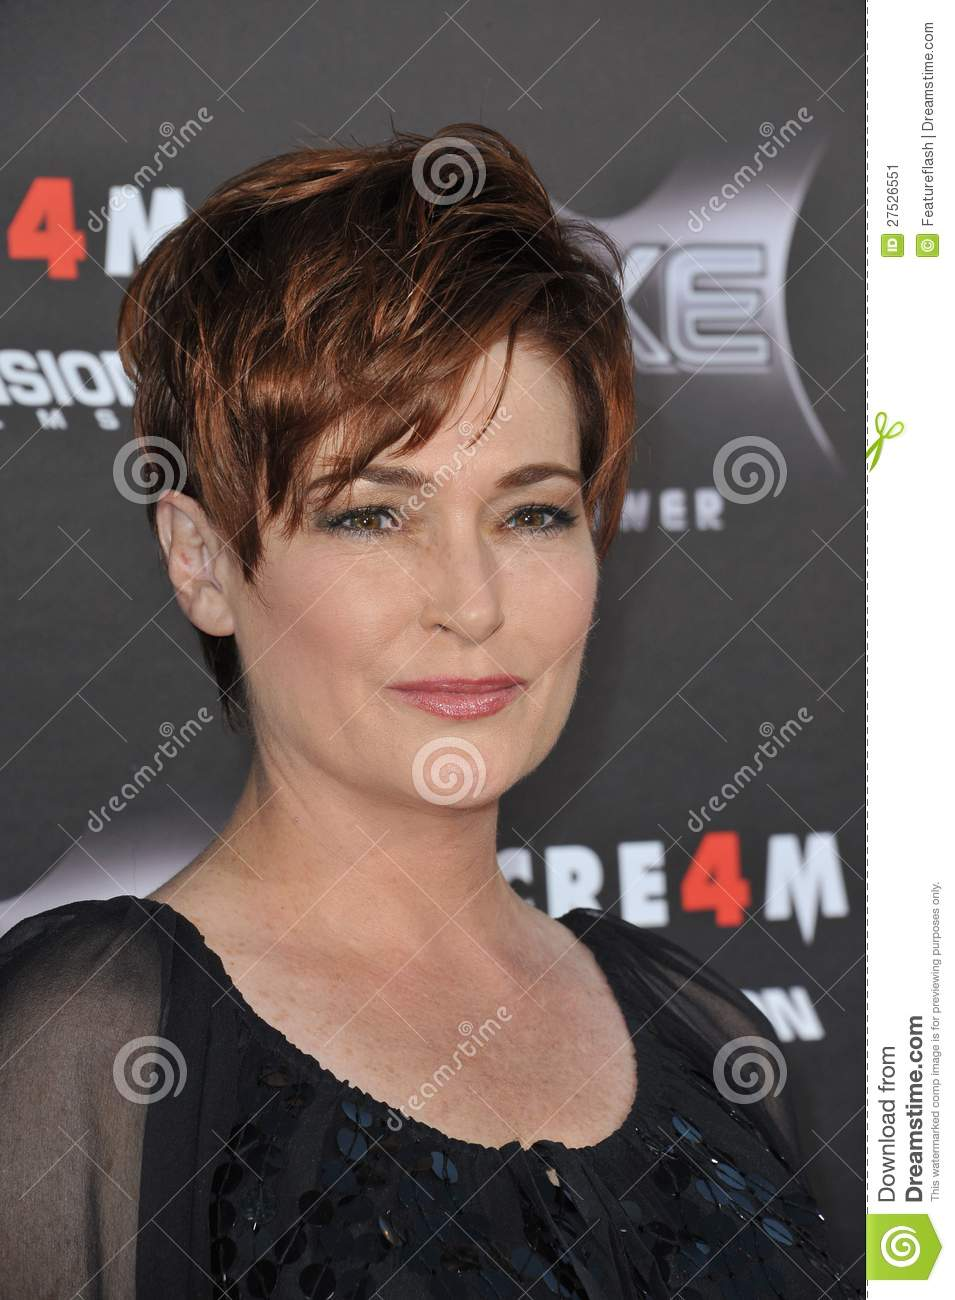 carolyn hennesy bookscarolyn hennesy 2016, carolyn hennesy, carolyn hennesy true blood, carolyn hennesy feet, carolyn hennesy age, carolyn hennesy hot, carolyn hennesy net worth, carolyn hennesy imdb, carolyn hennesy movies and tv shows, carolyn hennesy pandora, carolyn hennesy books, carolyn hennesy instagram, carolyn hennesy measurements, carolyn hennesy revenge, carolyn hennesy that 70s show, carolyn hennesy leaving general hospital, carolyn hennesy hairstyles, carolyn hennesy once upon a time, carolyn hennesy bra size, carolyn hennesy twitter